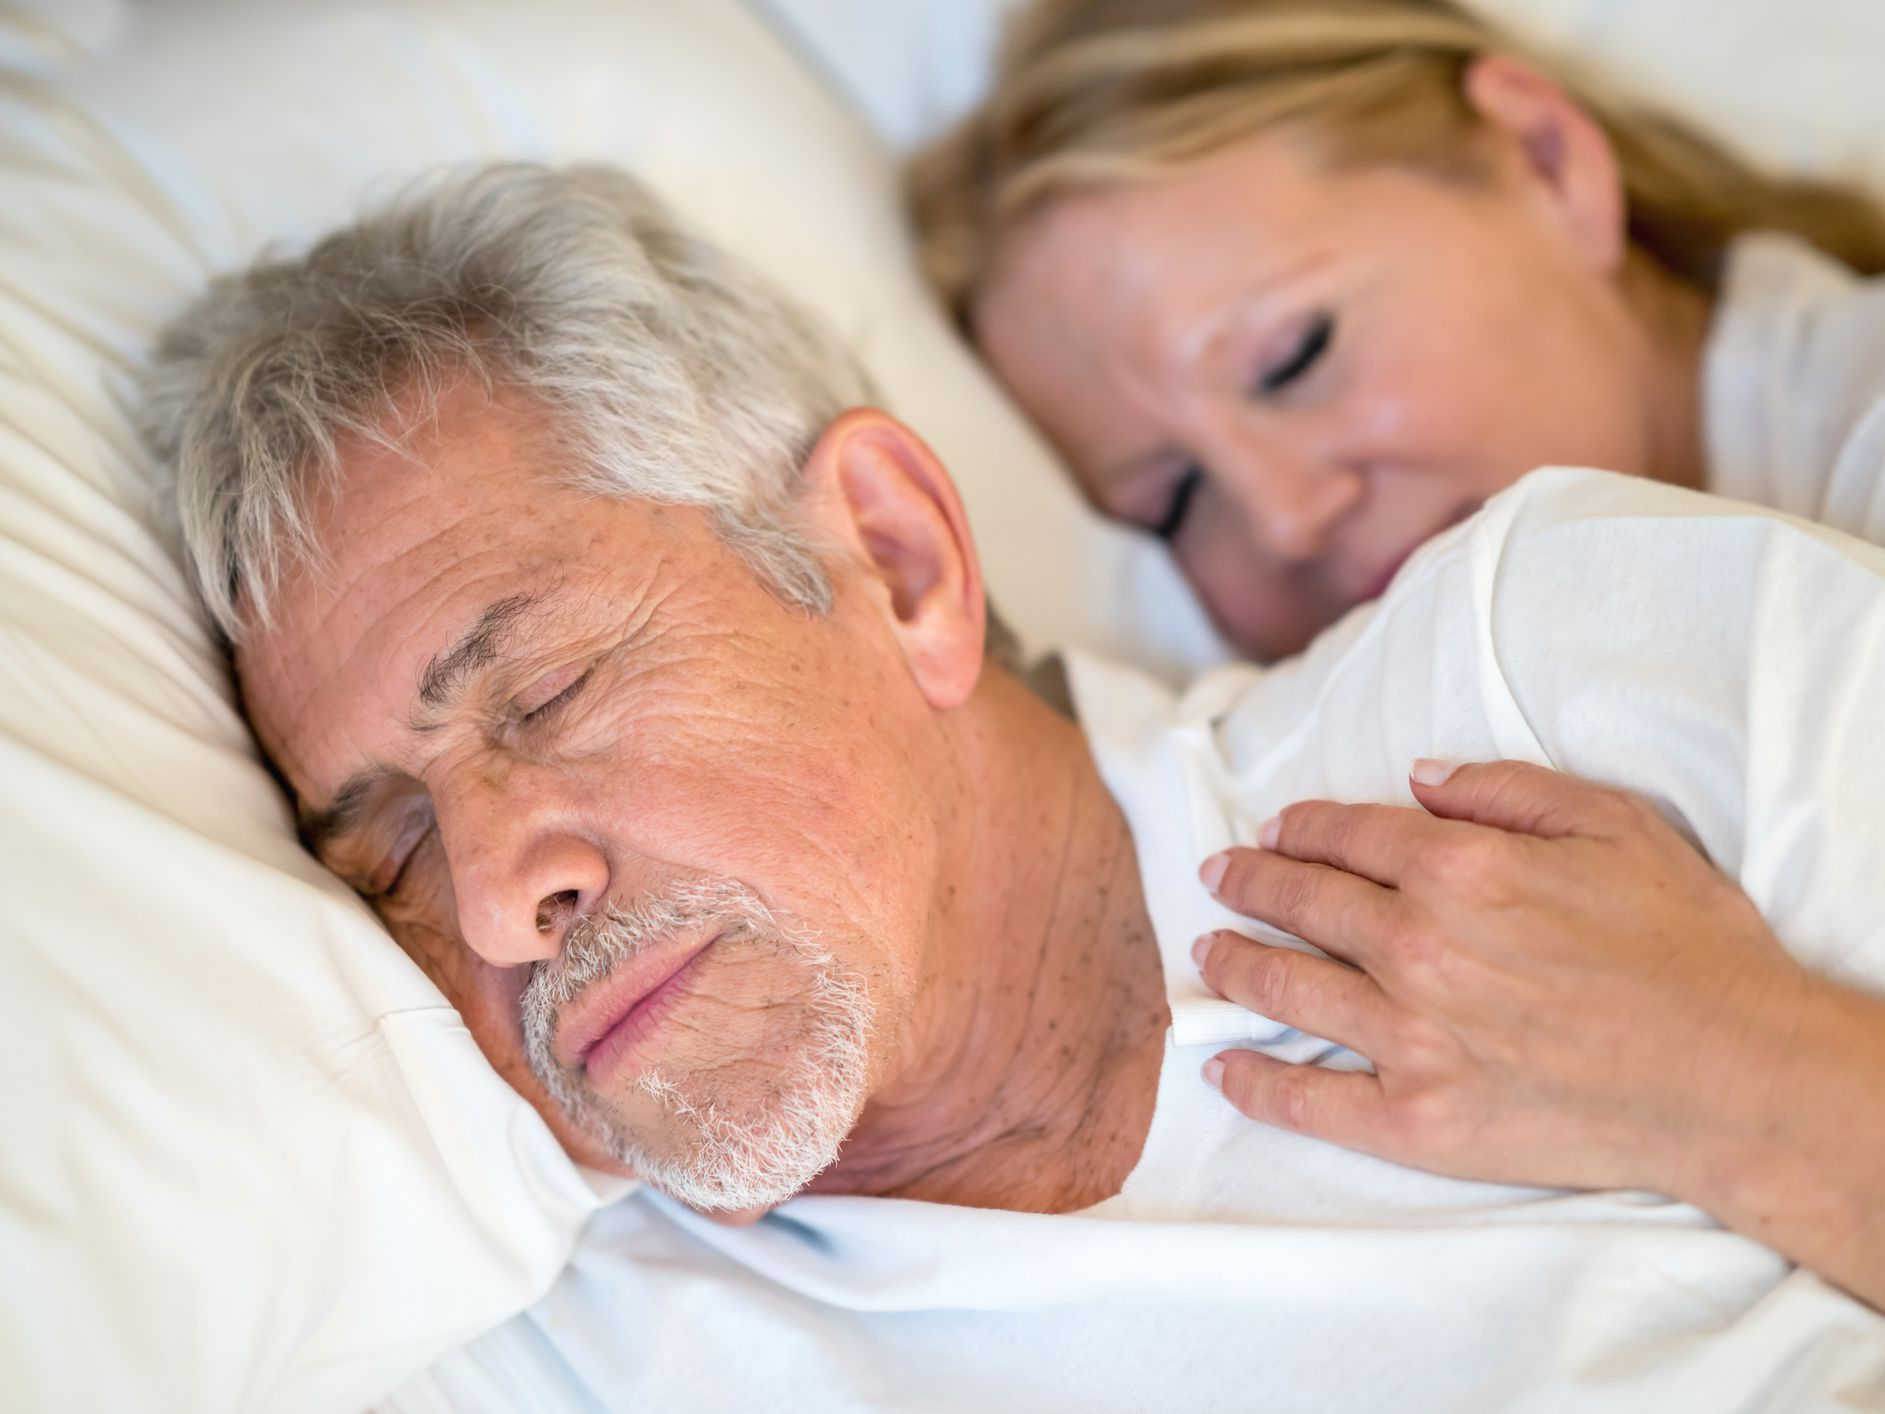 How Back Pain While Sleeping Could Be Your Position